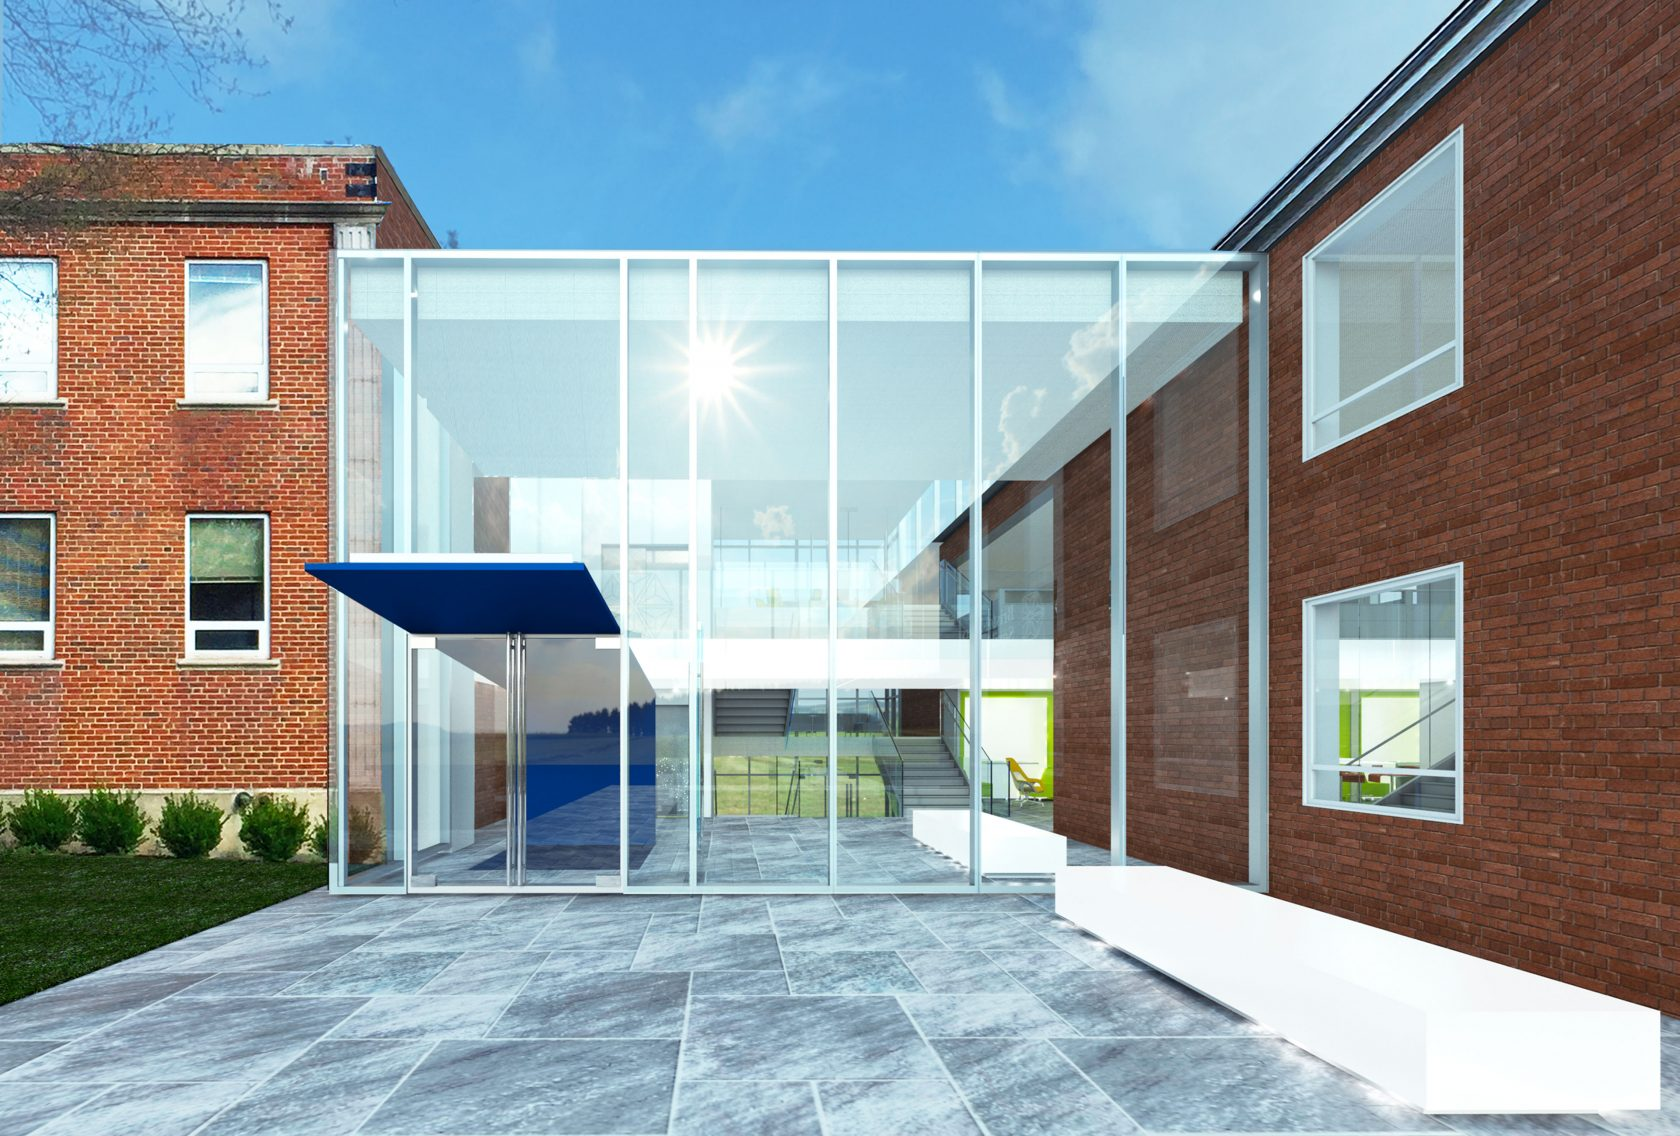 EXTERIOR-PERSPECTIVE connecting-stair CRB-rendering